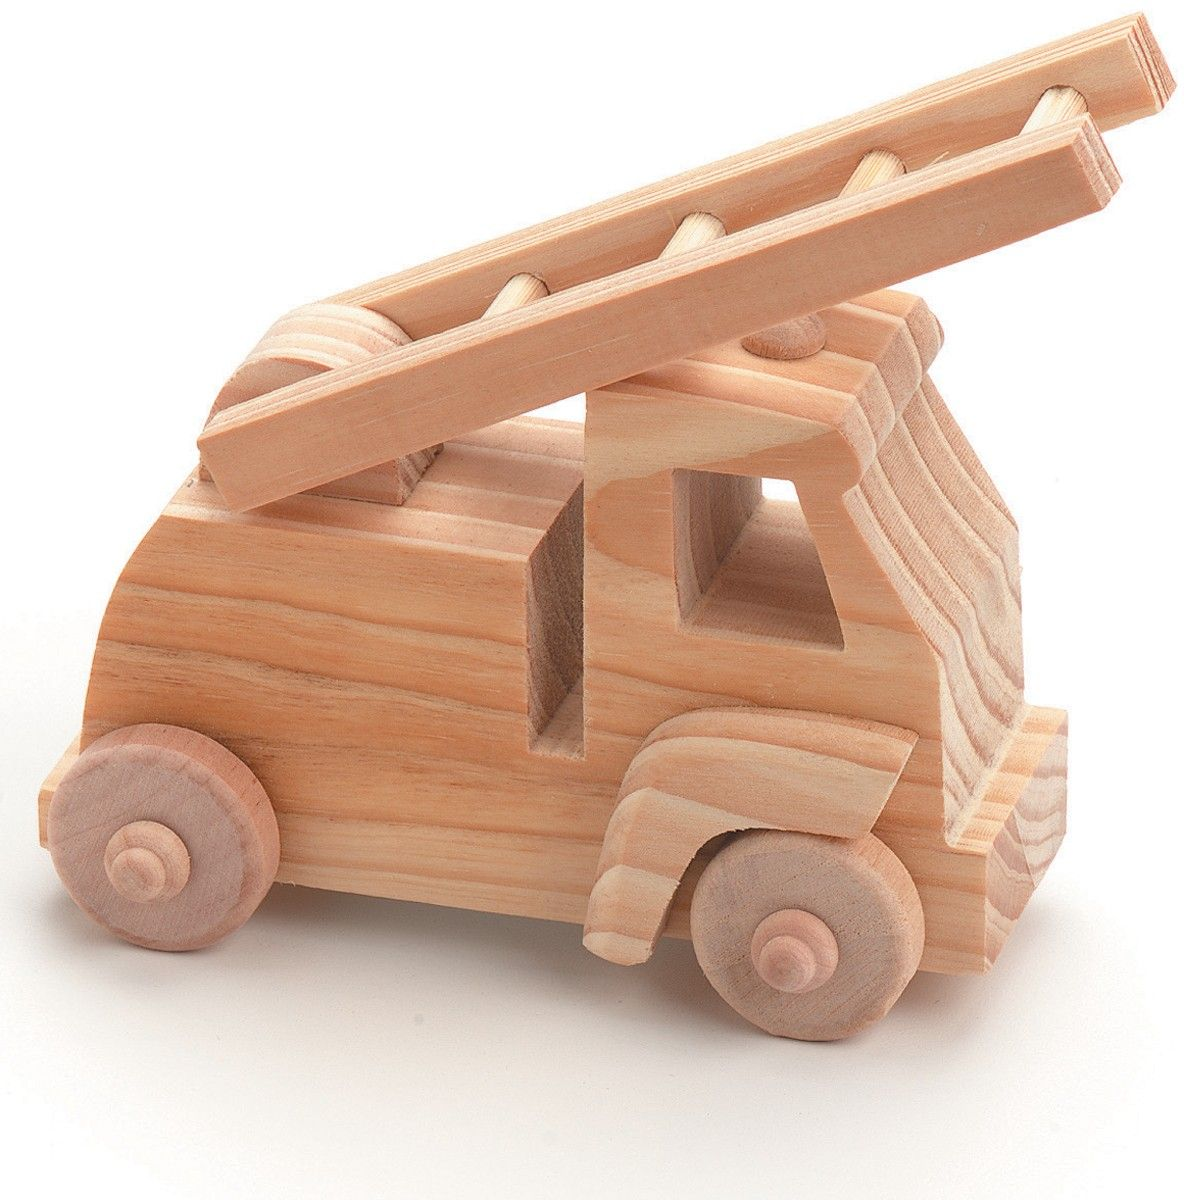 Fire Truck Wood Toy Kit | Fire House Party (Girl ...